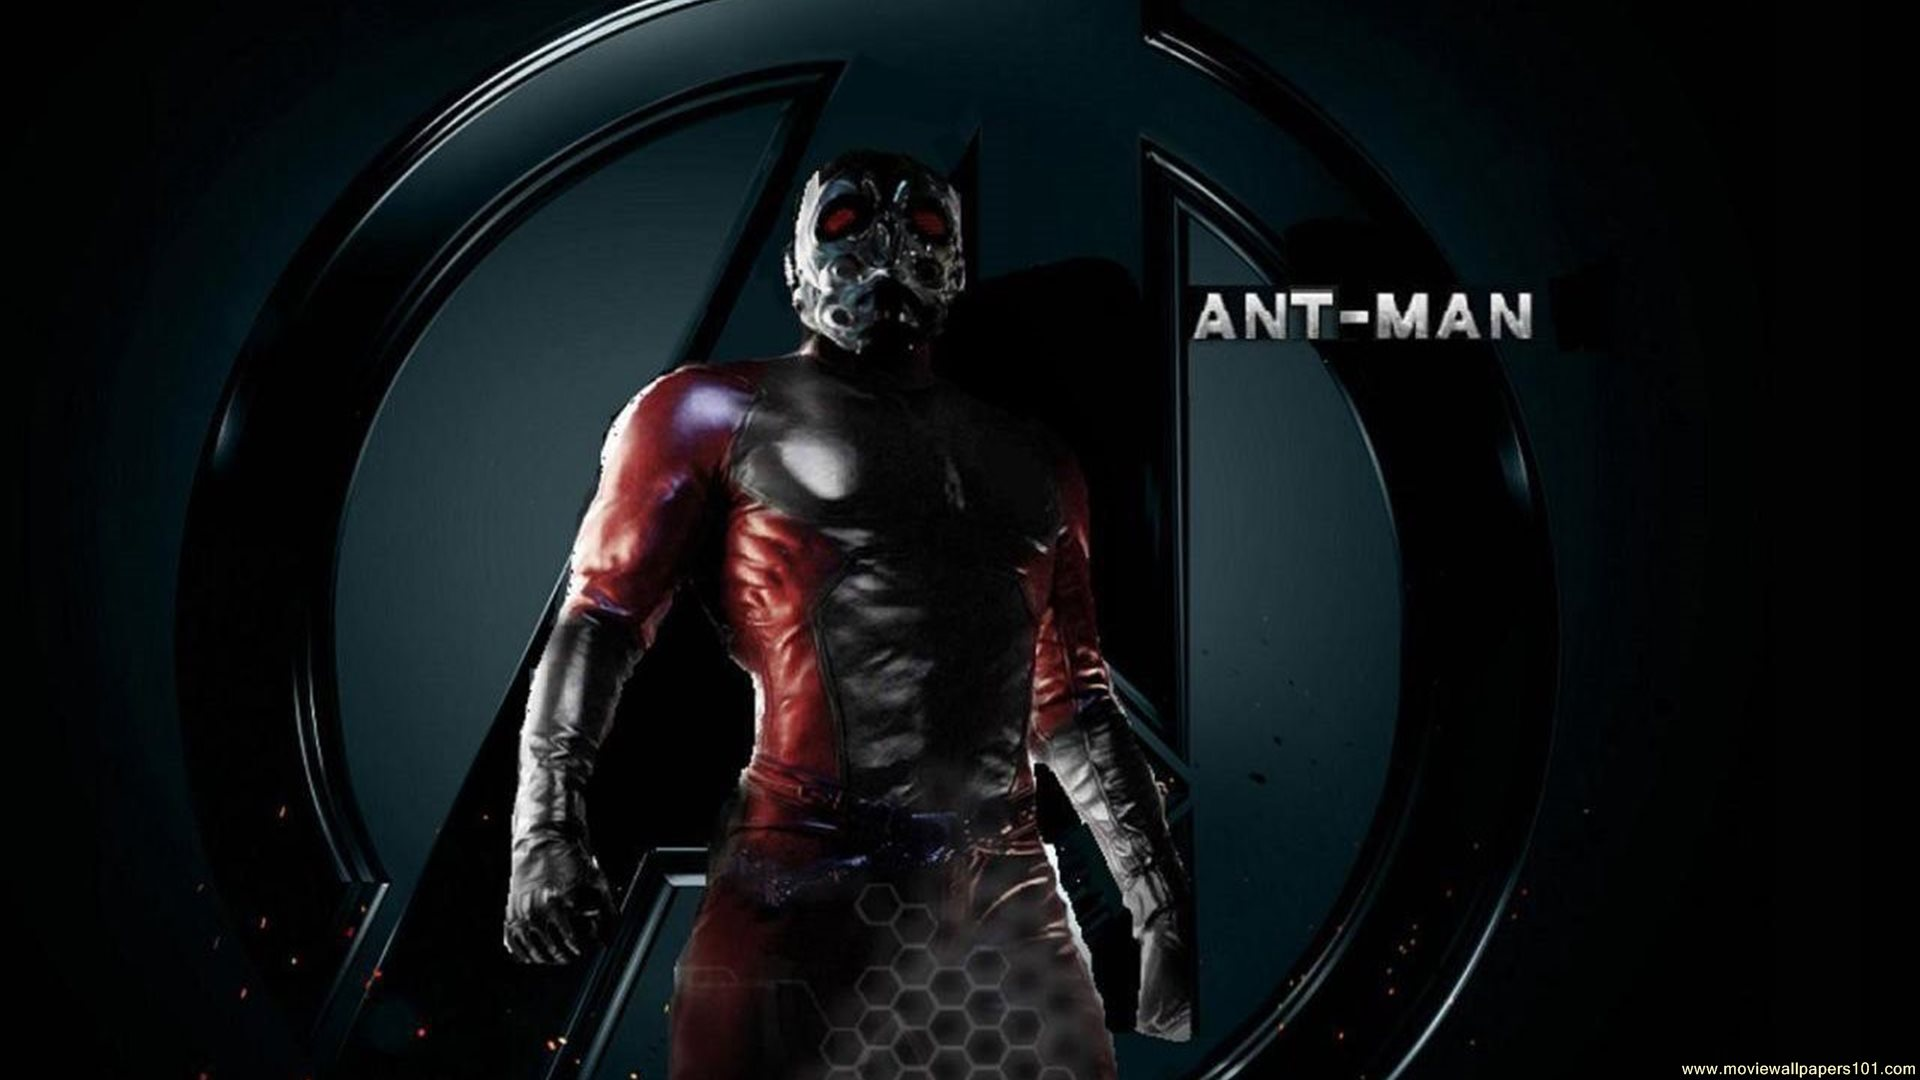 ANT-MAN is marvellous